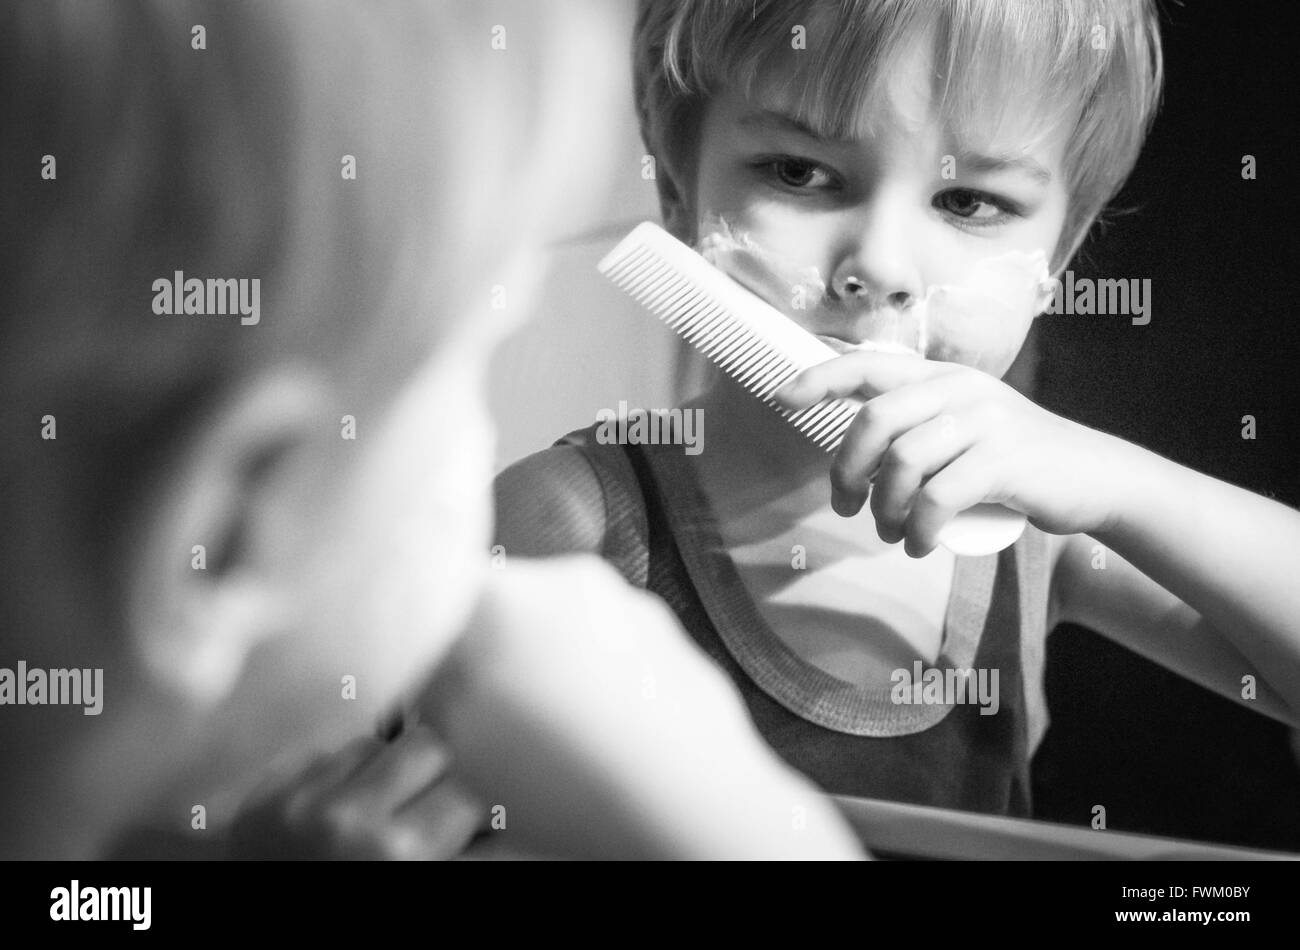 Reflection Of Boy Holding Comb On Mirror In Bathroom - Stock Image